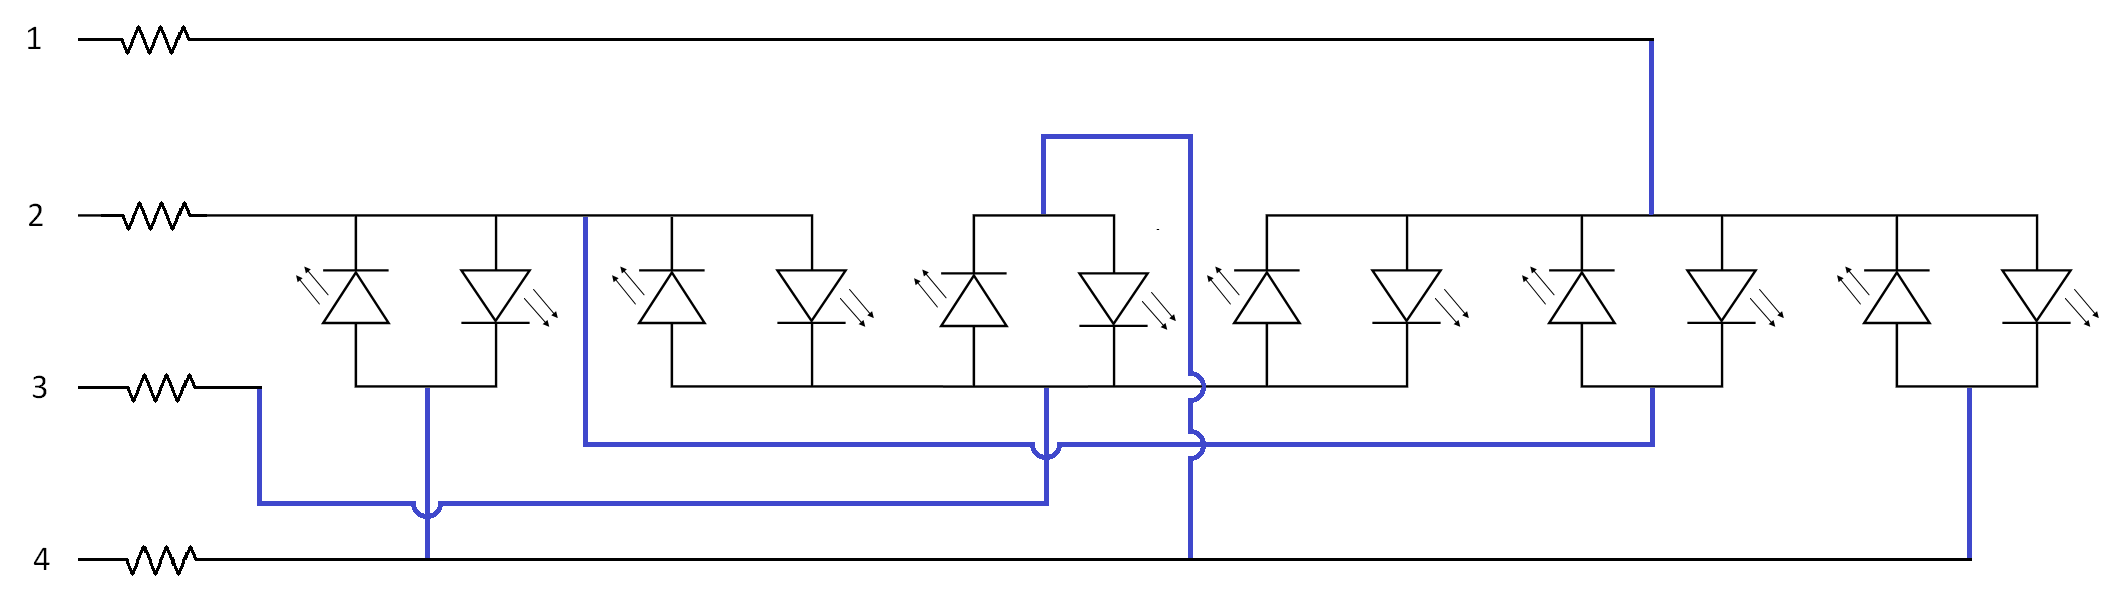 Tactical Tinkering 3v Led Chaser Circuit Diagram Super The Black Lines Being Rails Or Pins And Blue Wires Resistors Are Necessary To Protect Microcontroller Prolong Life Off